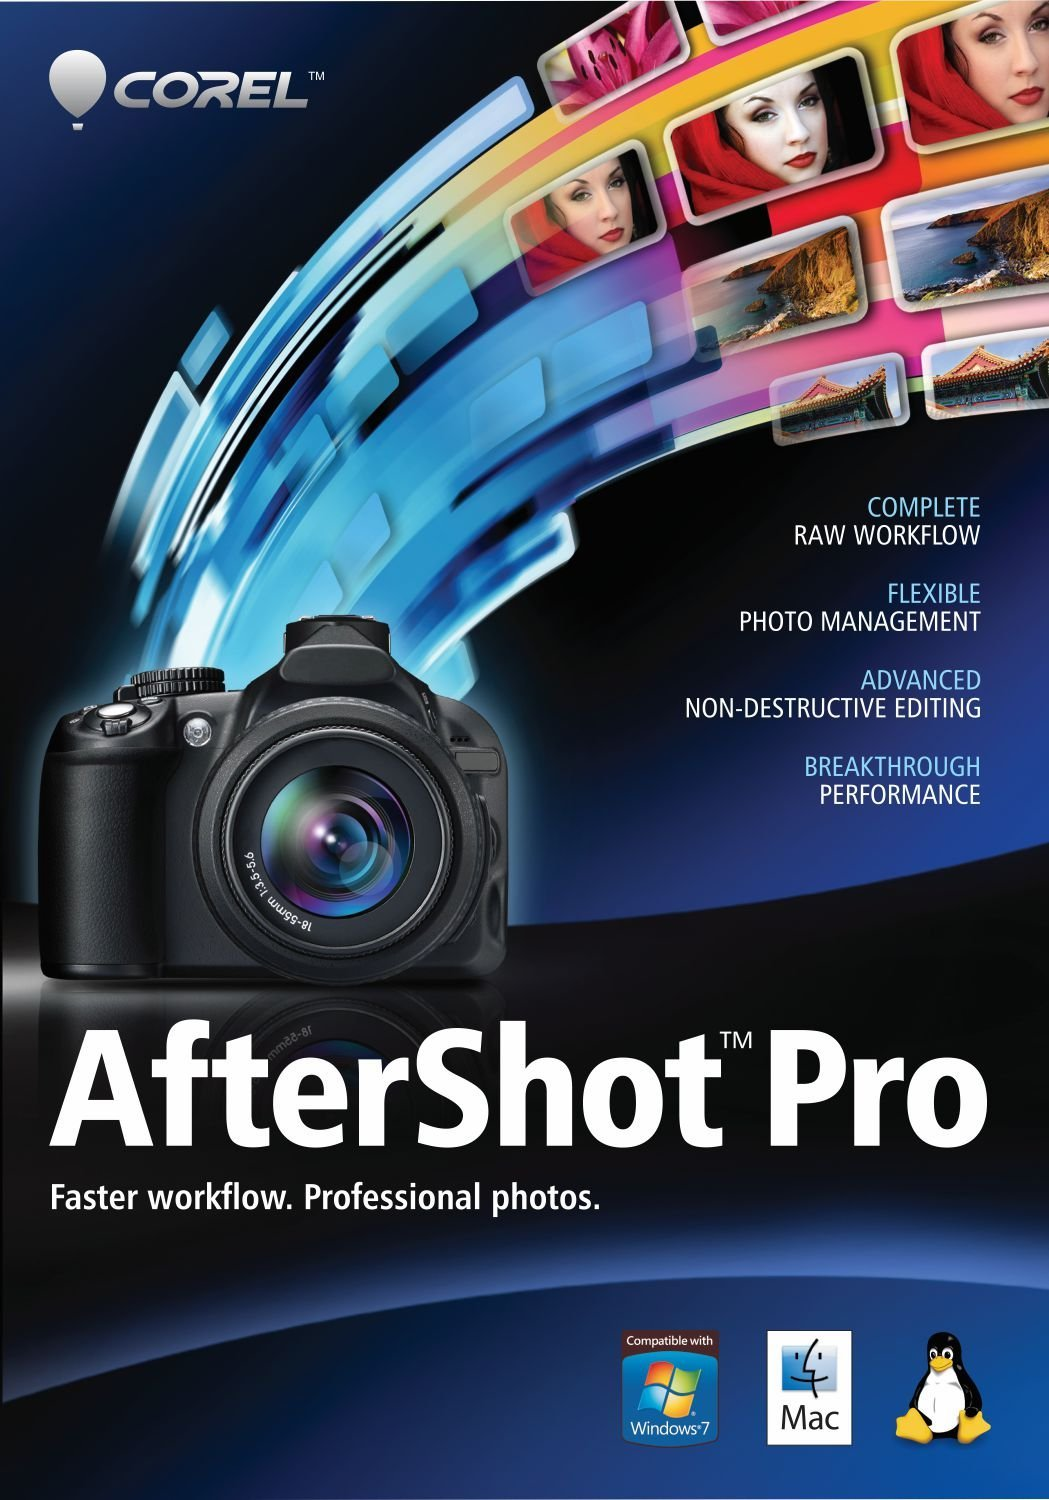 Corel Aftershot Pro 3.1.0.181 Crack 2018 + Serial Key Free Download